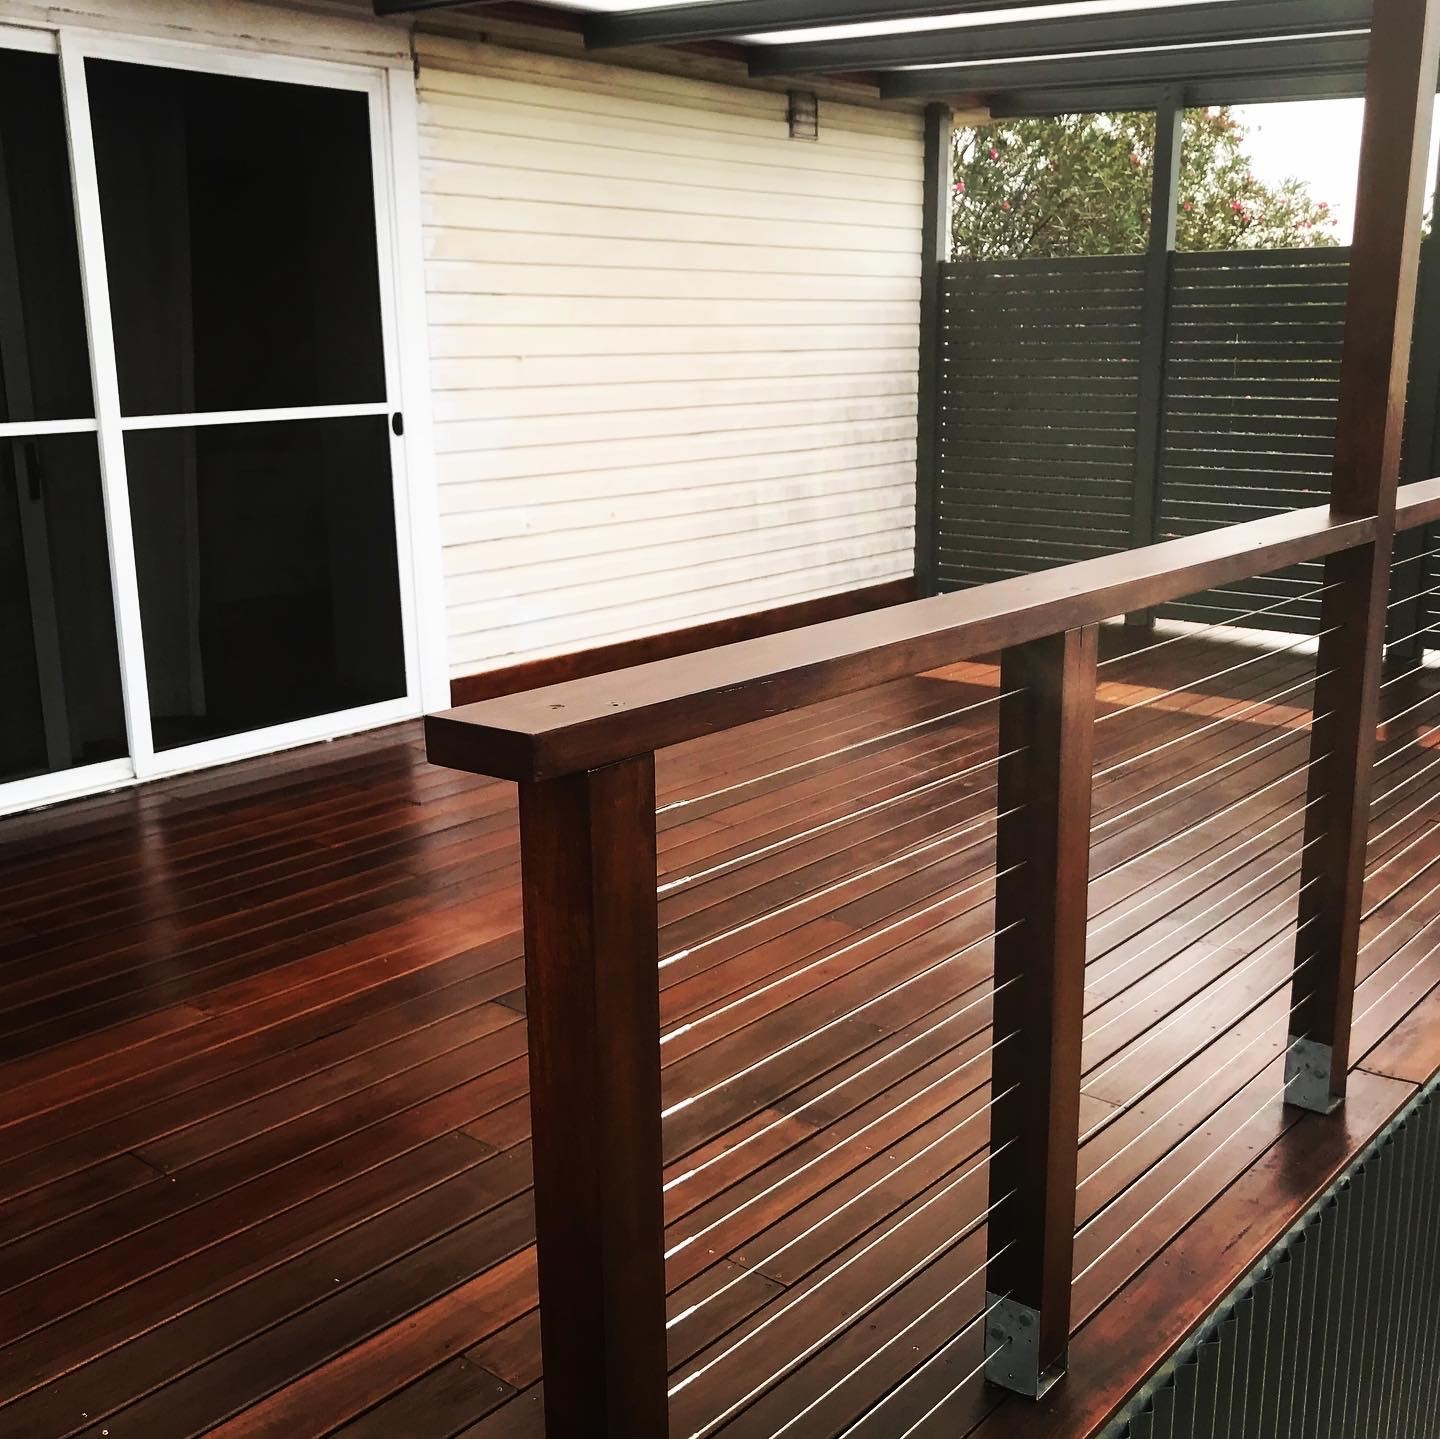 Re-stained deck